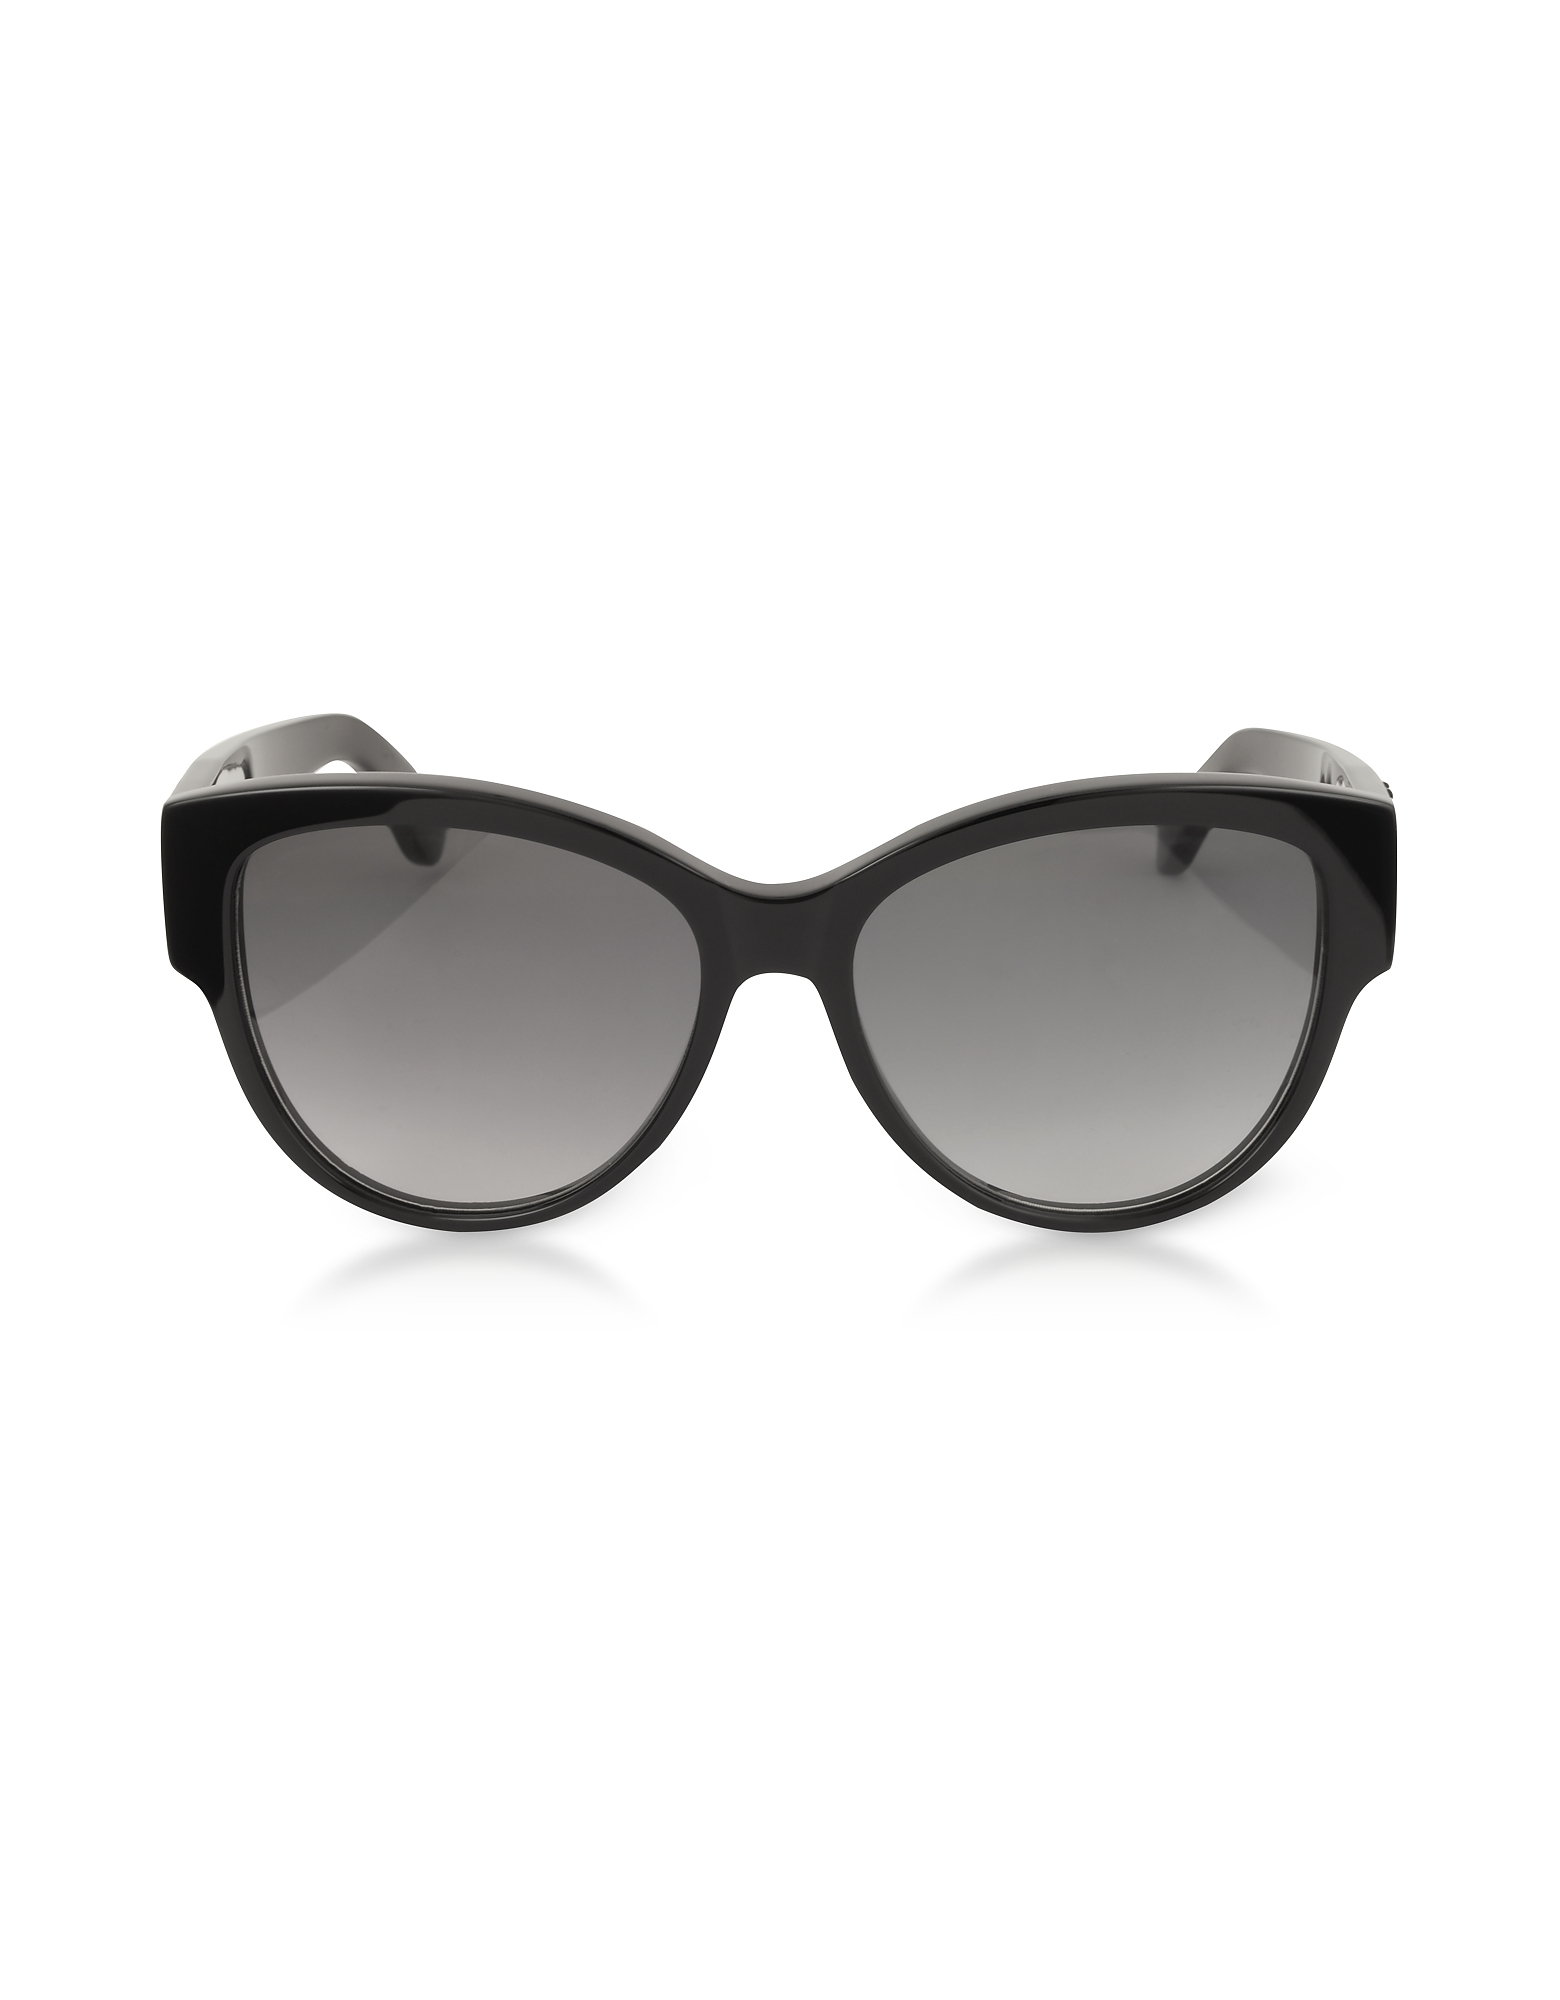 Saint Laurent Designer Sunglasses, SL M3 Round Black Acetate Frame Women's Sunglasses